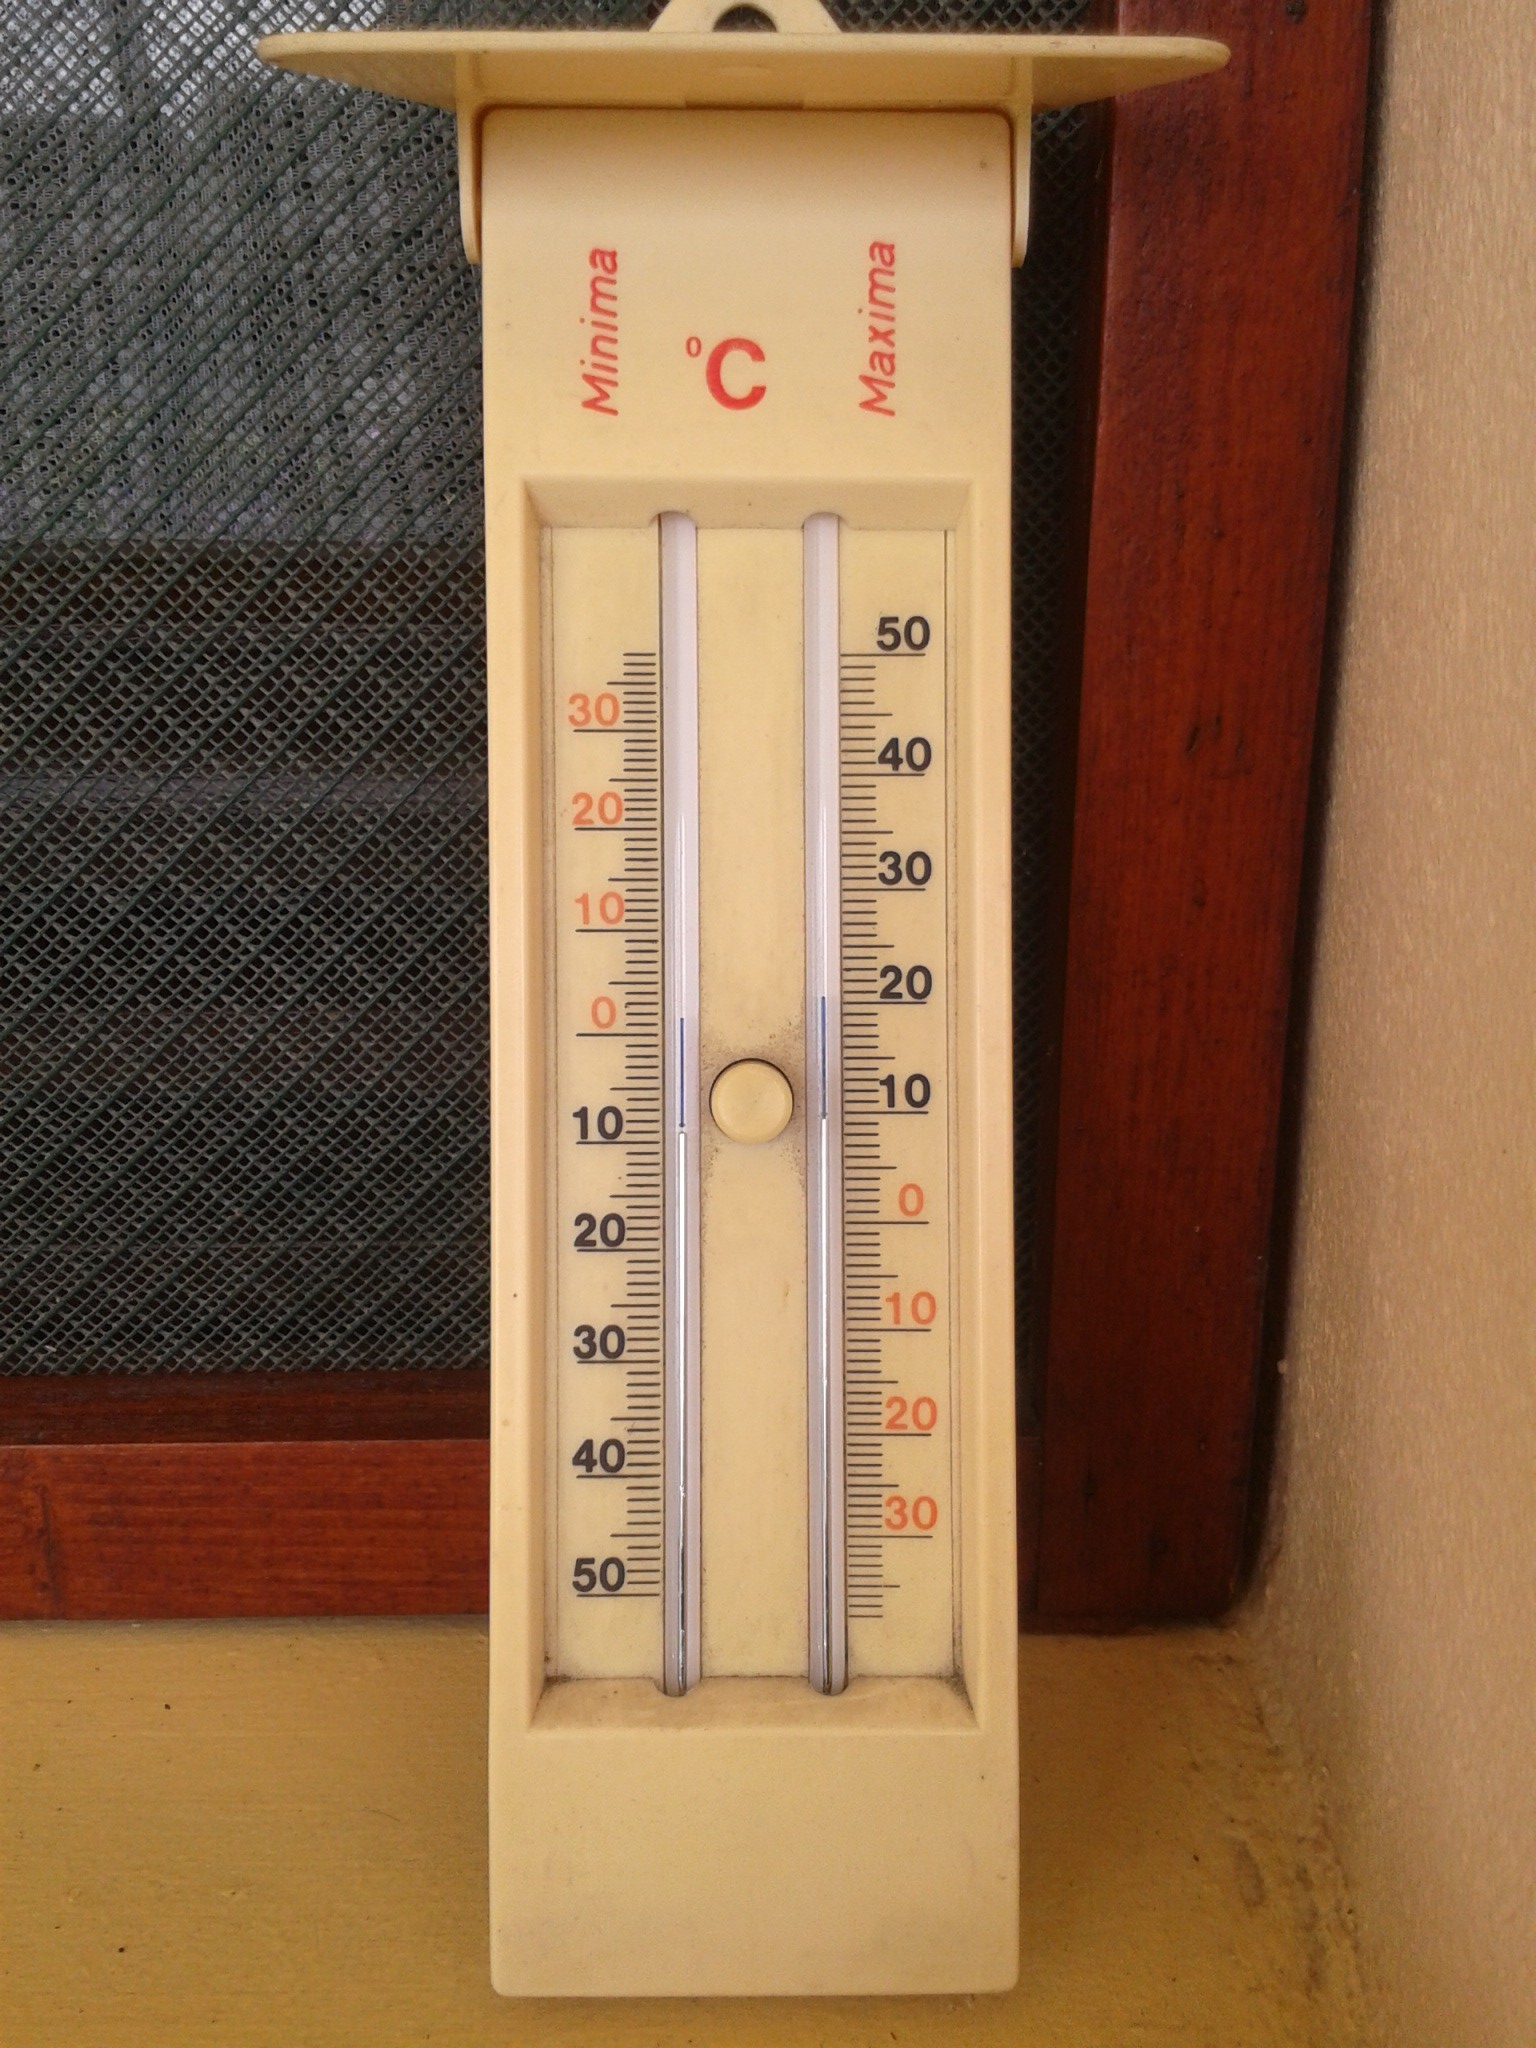 http://meteo01.fr/photonews/thermo.jpg